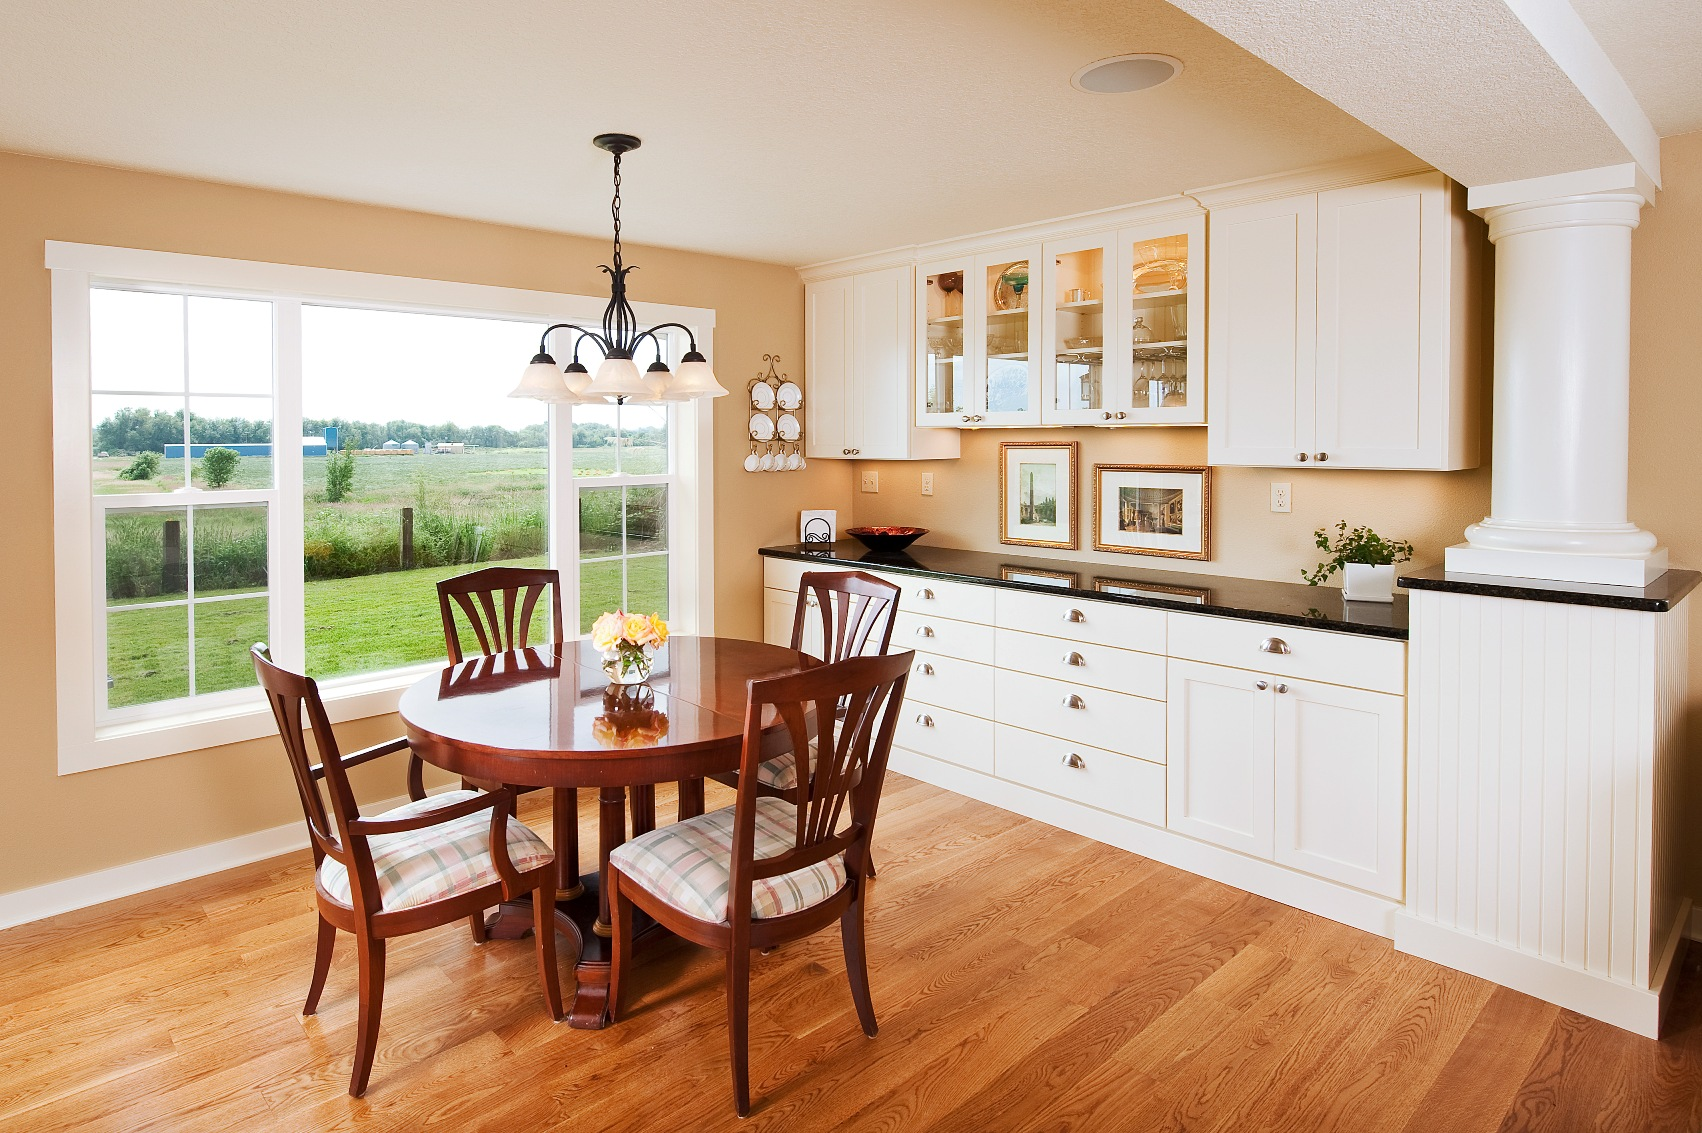 Eat in kitchen furniture Hgtv Powell Construction Featured In Powell Construction Powell Construction Featured In